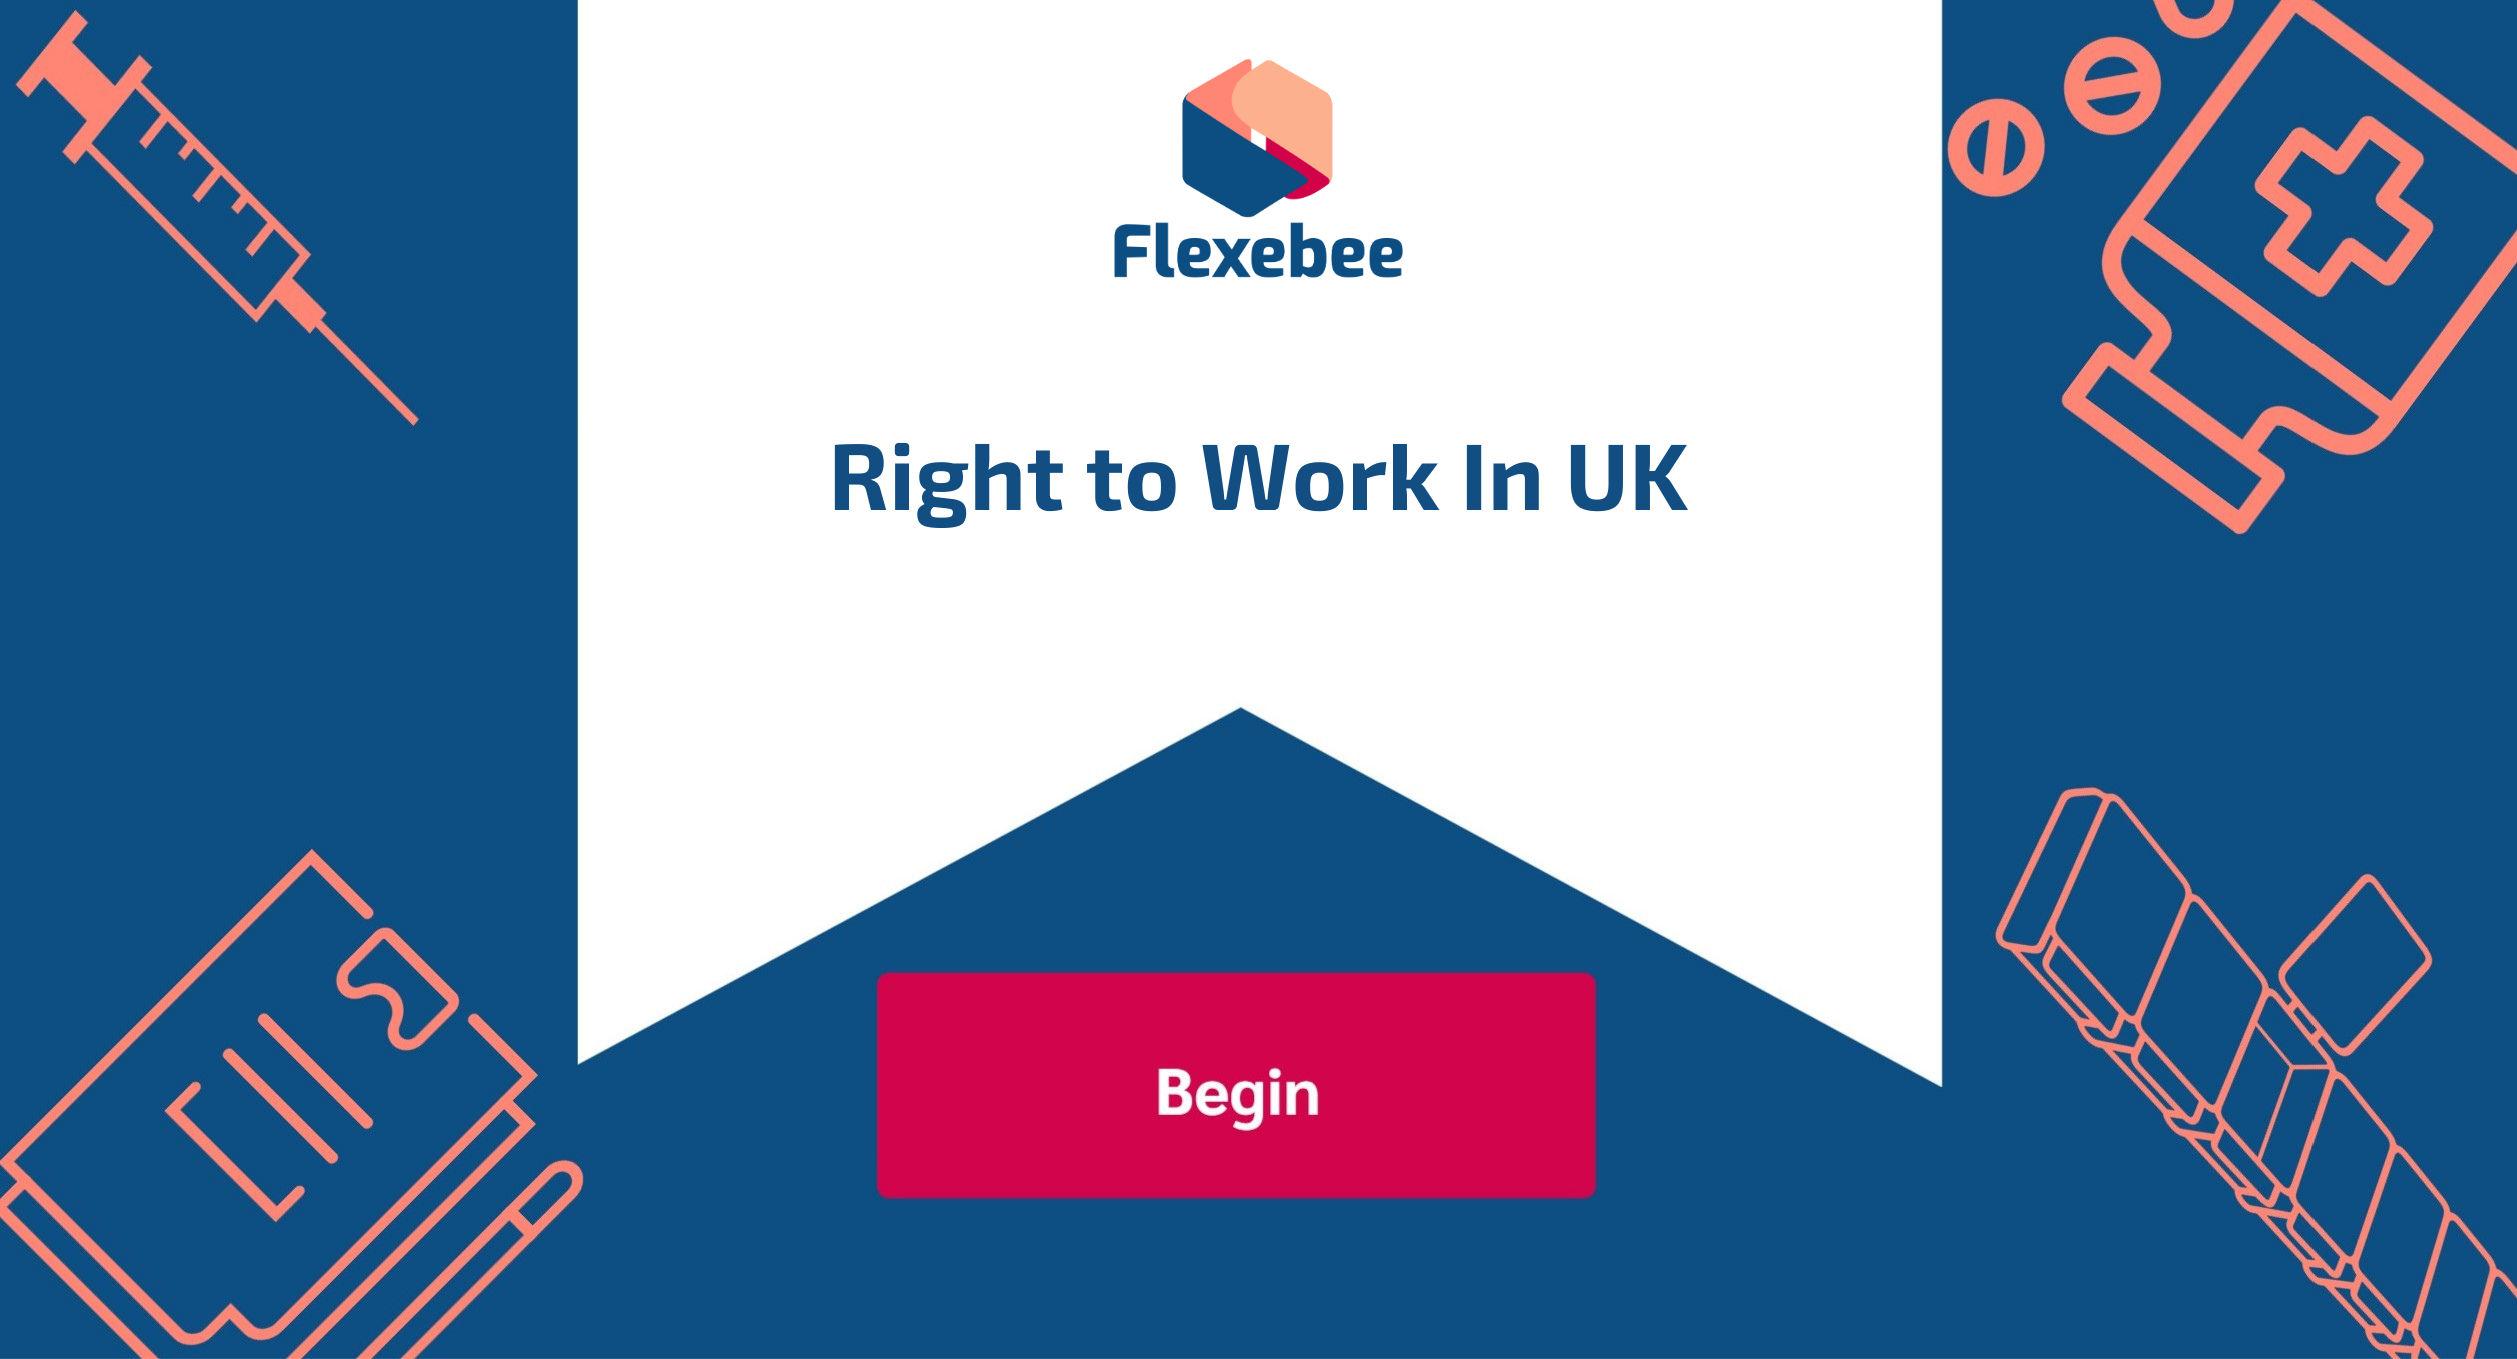 Right to Work In UK